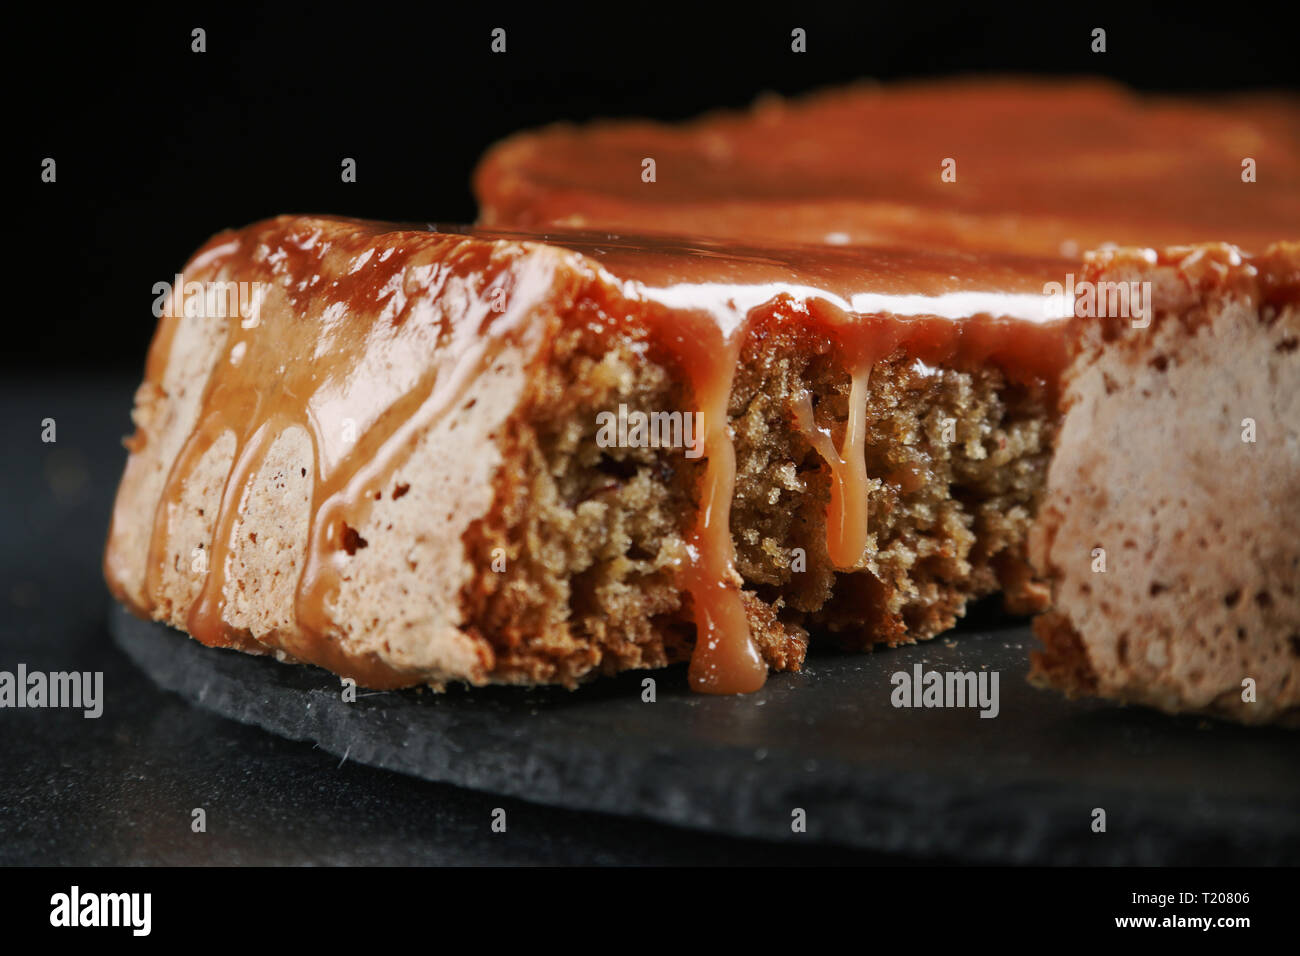 pie with caramel close up on dark background. cake with banana and caramel. Stock Photo